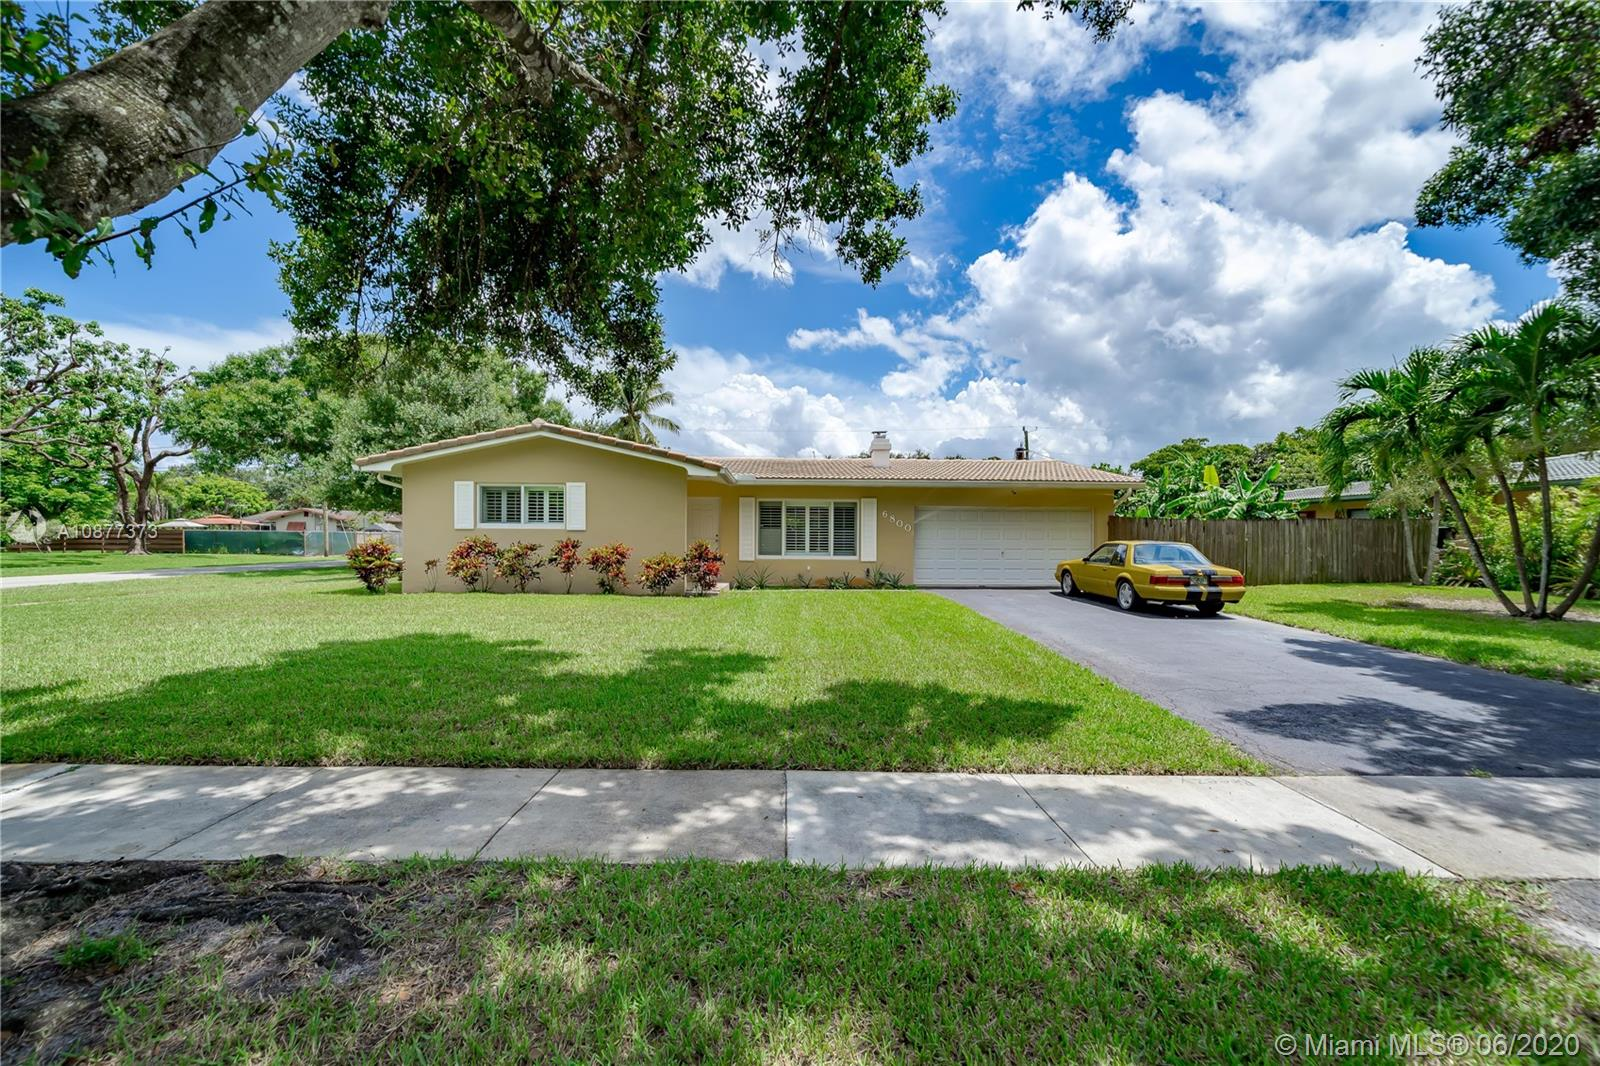 4/3 2,928 liv SF upgraded, turn-key smart home w/tons of features & room inside & out. Entertain around the pool on your large corner lot w/fence, mature fruit trees, covered outdoor kitchen, swing set, & butterfly garden. Split & open floor plan w/2 AC units, w/formal dining & living, family, enclosed FL, office/bonus, laundry rooms & 2 car garage. Hurricane ready w/impact windows/doors. Control your home by voice & phone w/Echo smart system. Plantation shutters for every window, hands-free kitchen faucet, new plumbing, fresh paint, wood-burning fireplace. Kitchen boasts SS appliances w/island & marble-topped countertops. Tile throughout w/wood-tile in bedrooms, updated bathrooms, huge master walk-in closet, closet organizers for every room. Covid regs apply to showings-masks/min ppl etc